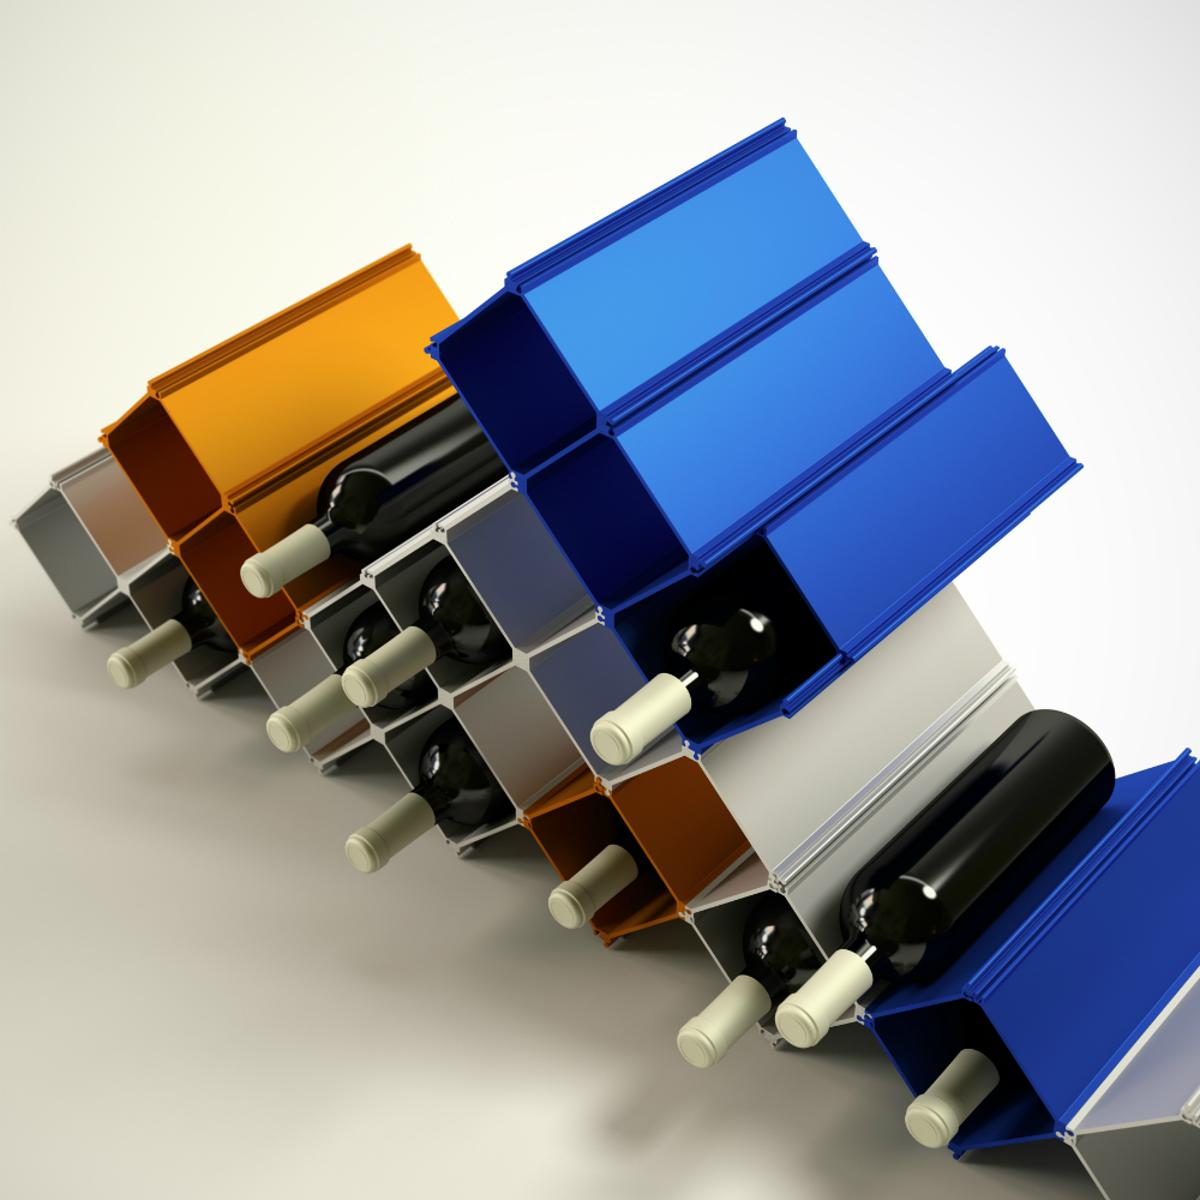 The options for the Nucleus wine rack are numerous